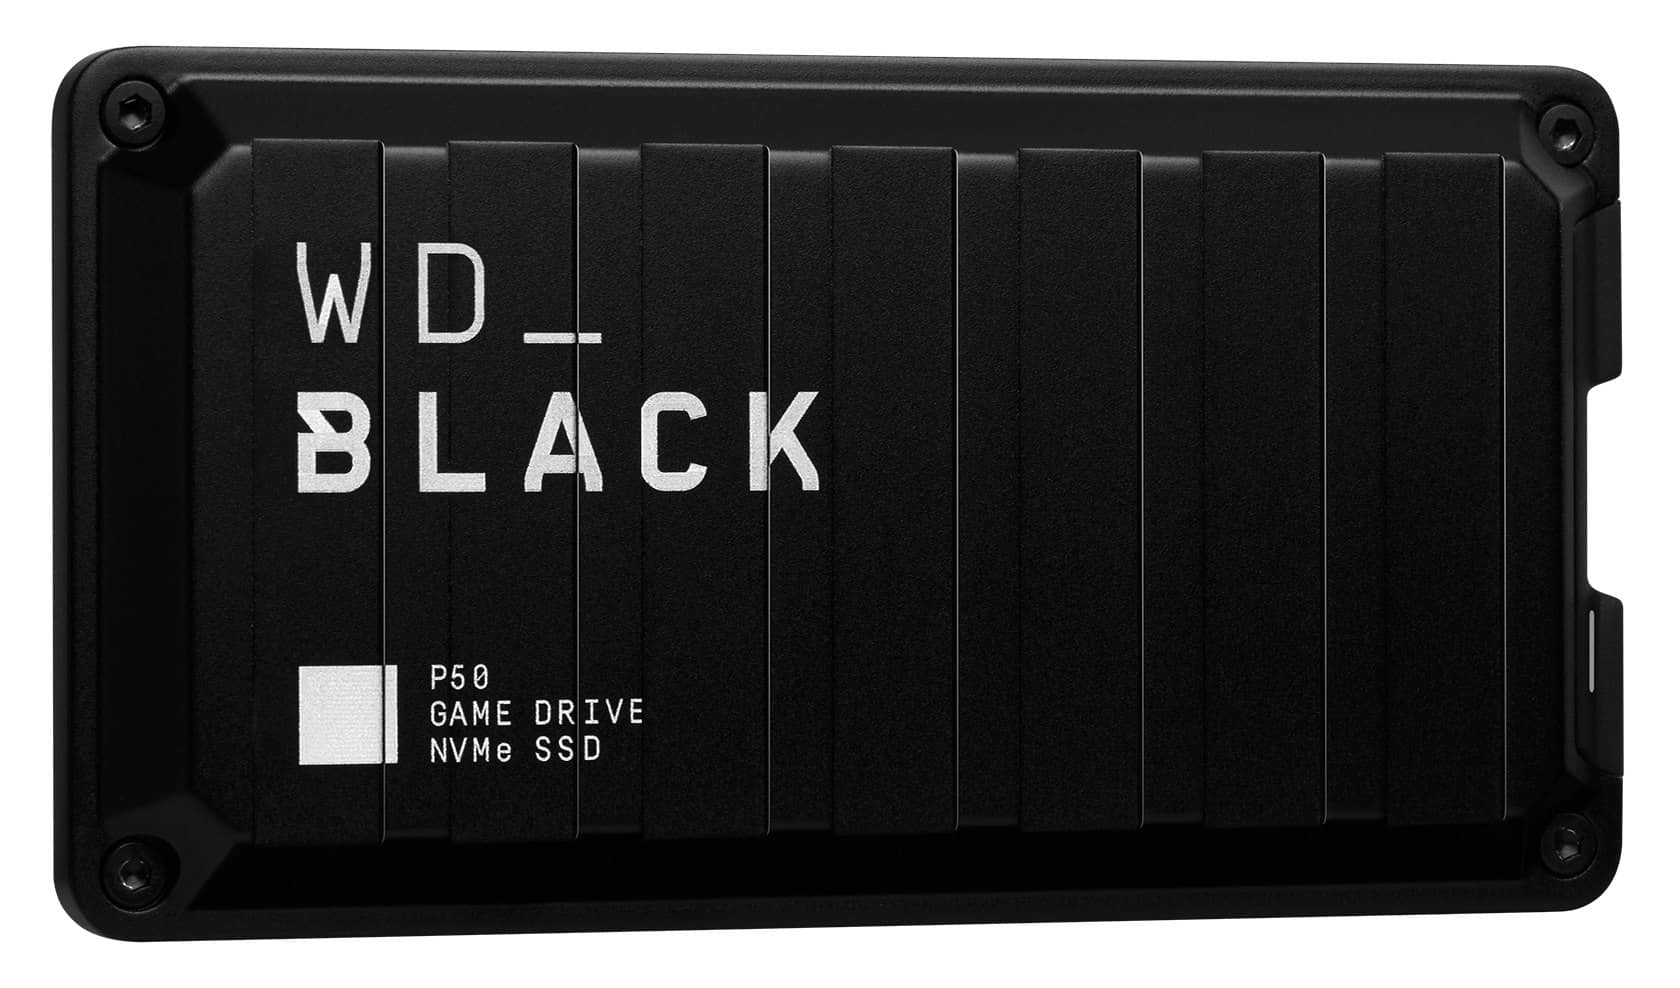 WD Black P50 Game Drive 05